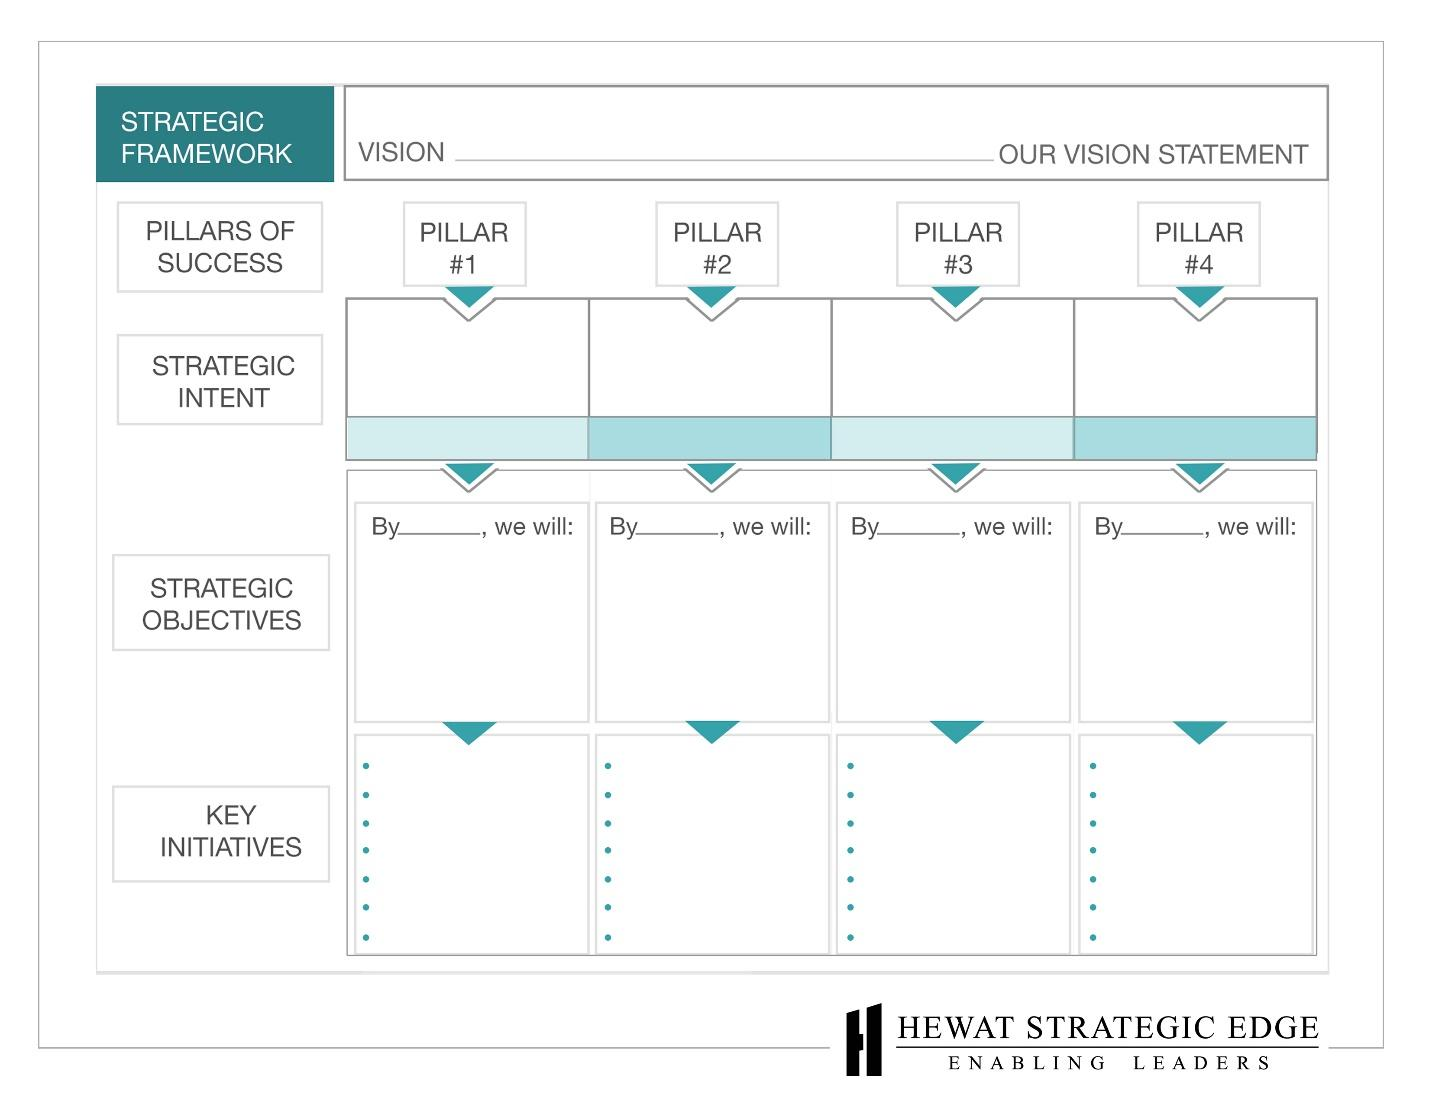 Strategic Framework Directions Vision Objectives